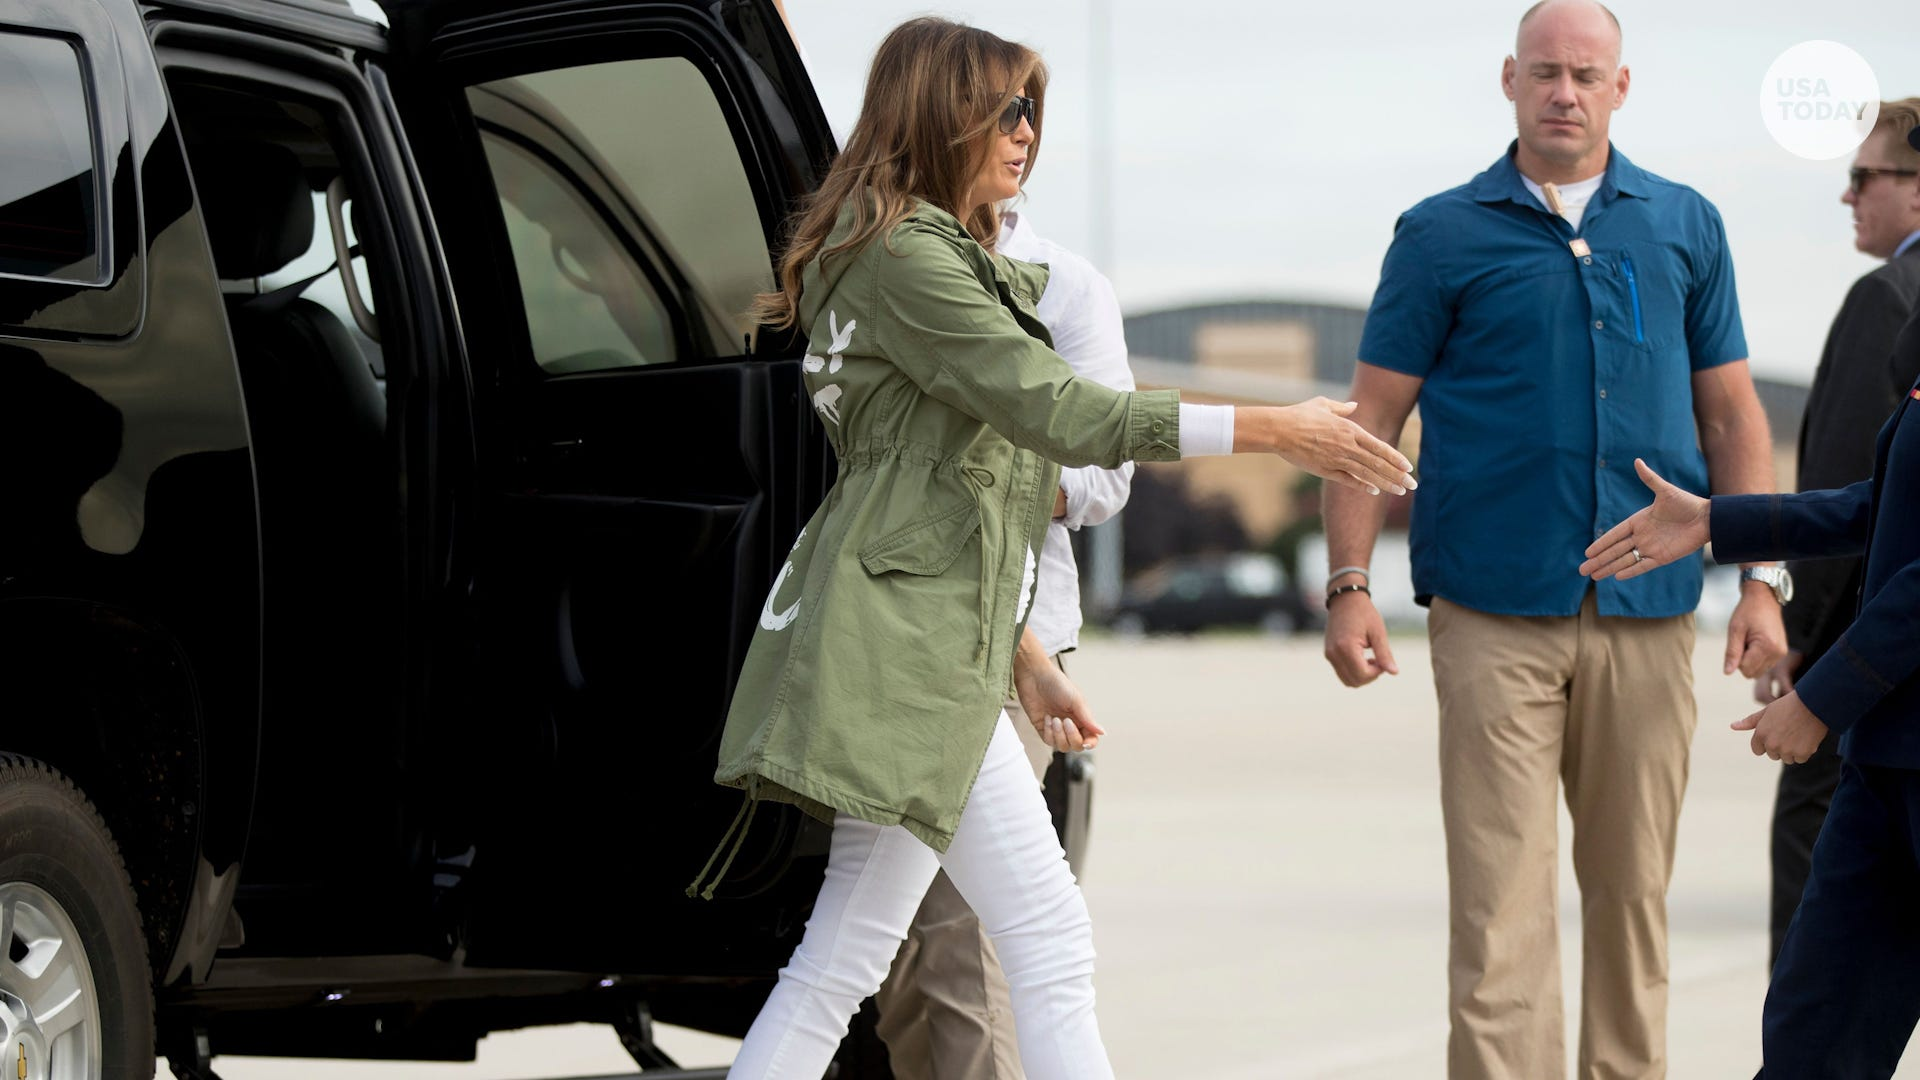 598399f2df42 First lady Melania Trump steps in again on migrant kids crisis in surprise  trip to Texas